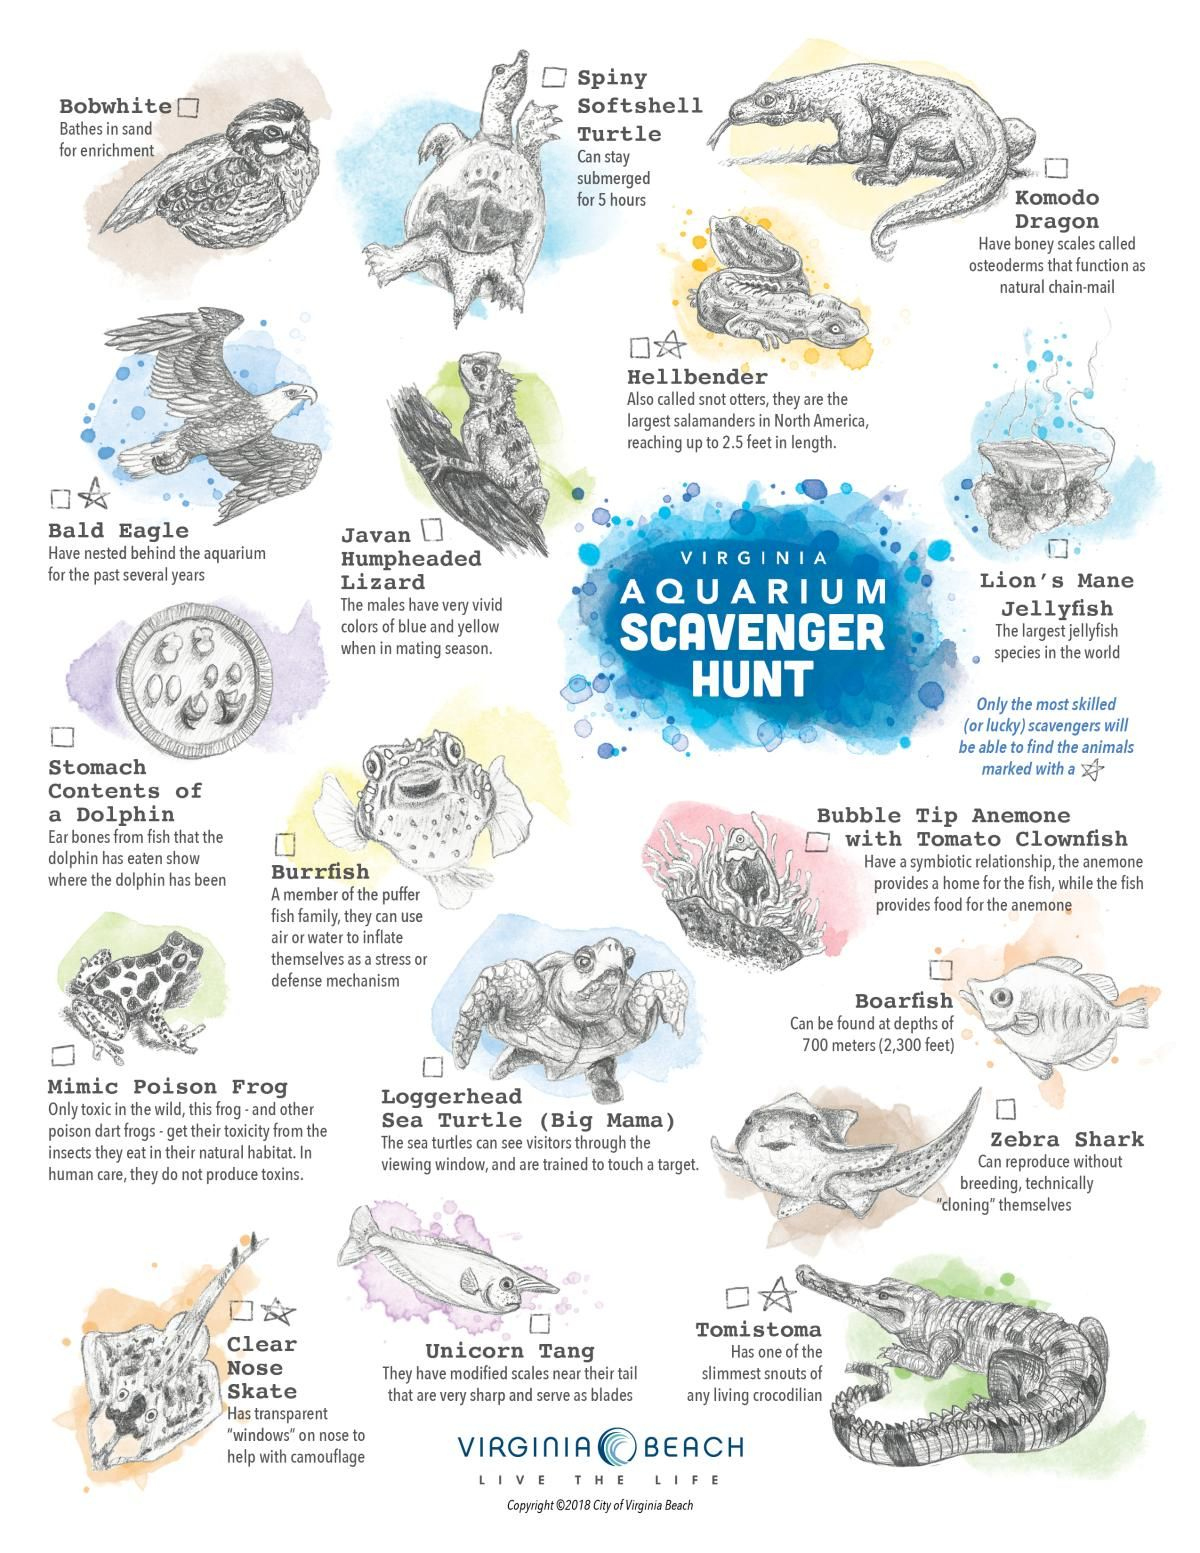 Explore The Virginia Aquarium And See What You Can Find with Printable A Day Bday Schedule Virginia Beach